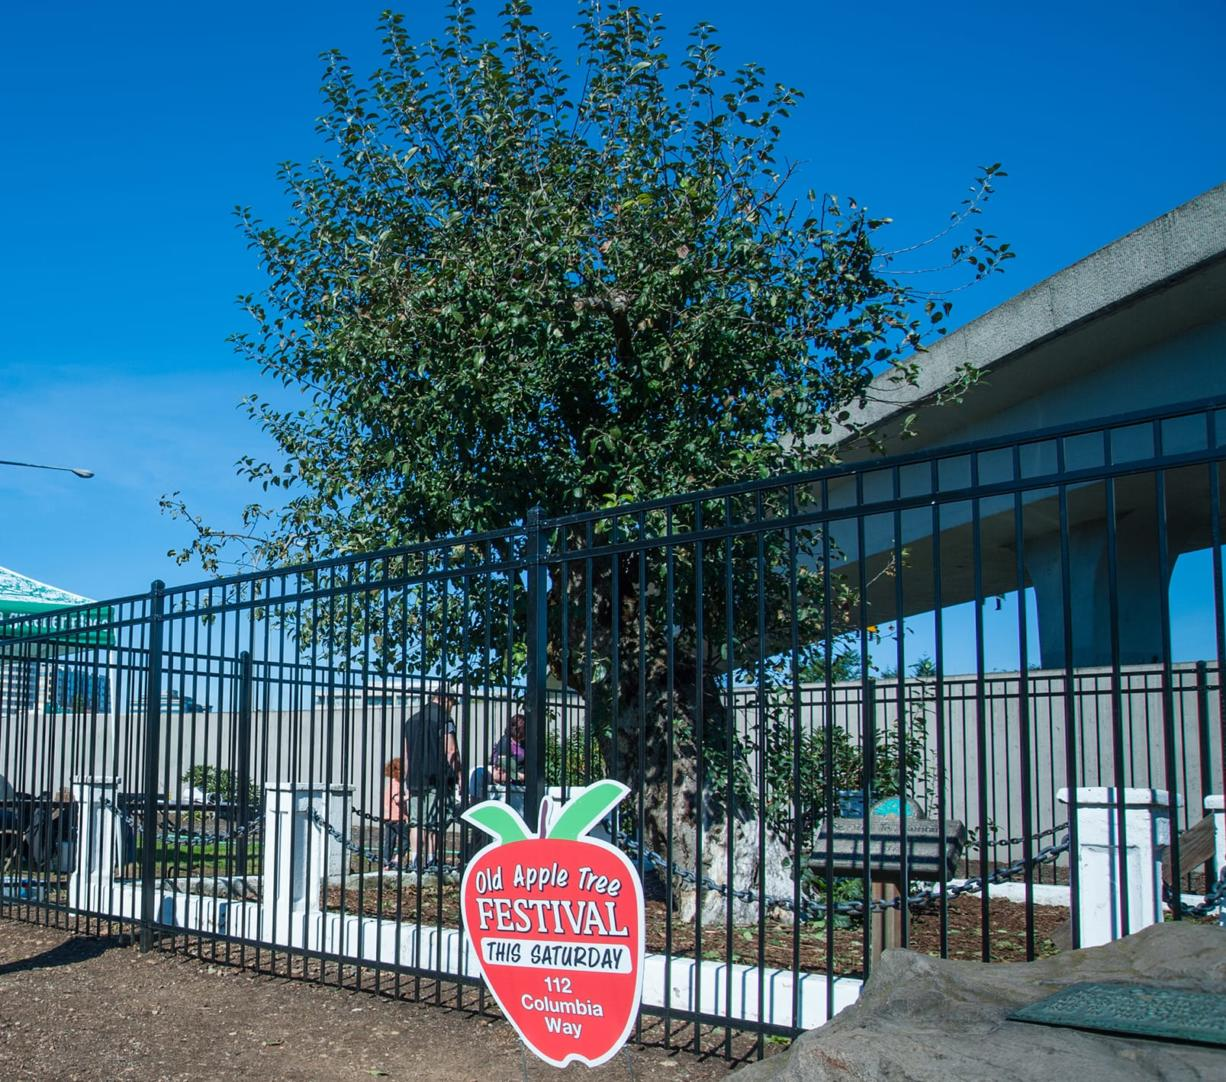 The Old Apple Tree, shown during the 2018 Old Apple Tree Festival, died recently at age 194.